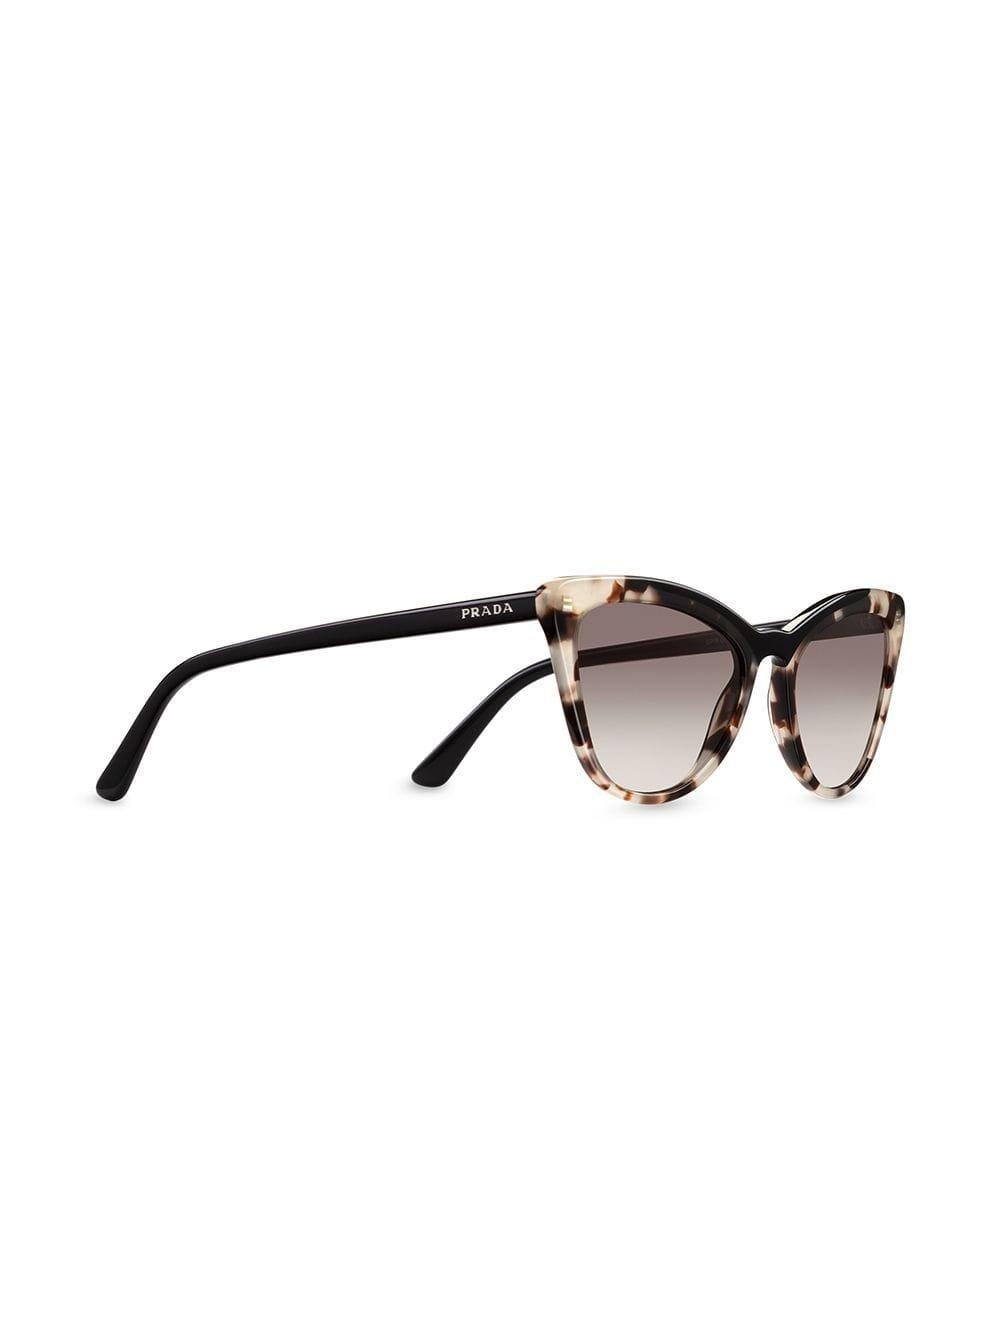 d583ba30d52 Lyst - Prada Ultravox Sunglasses in Black